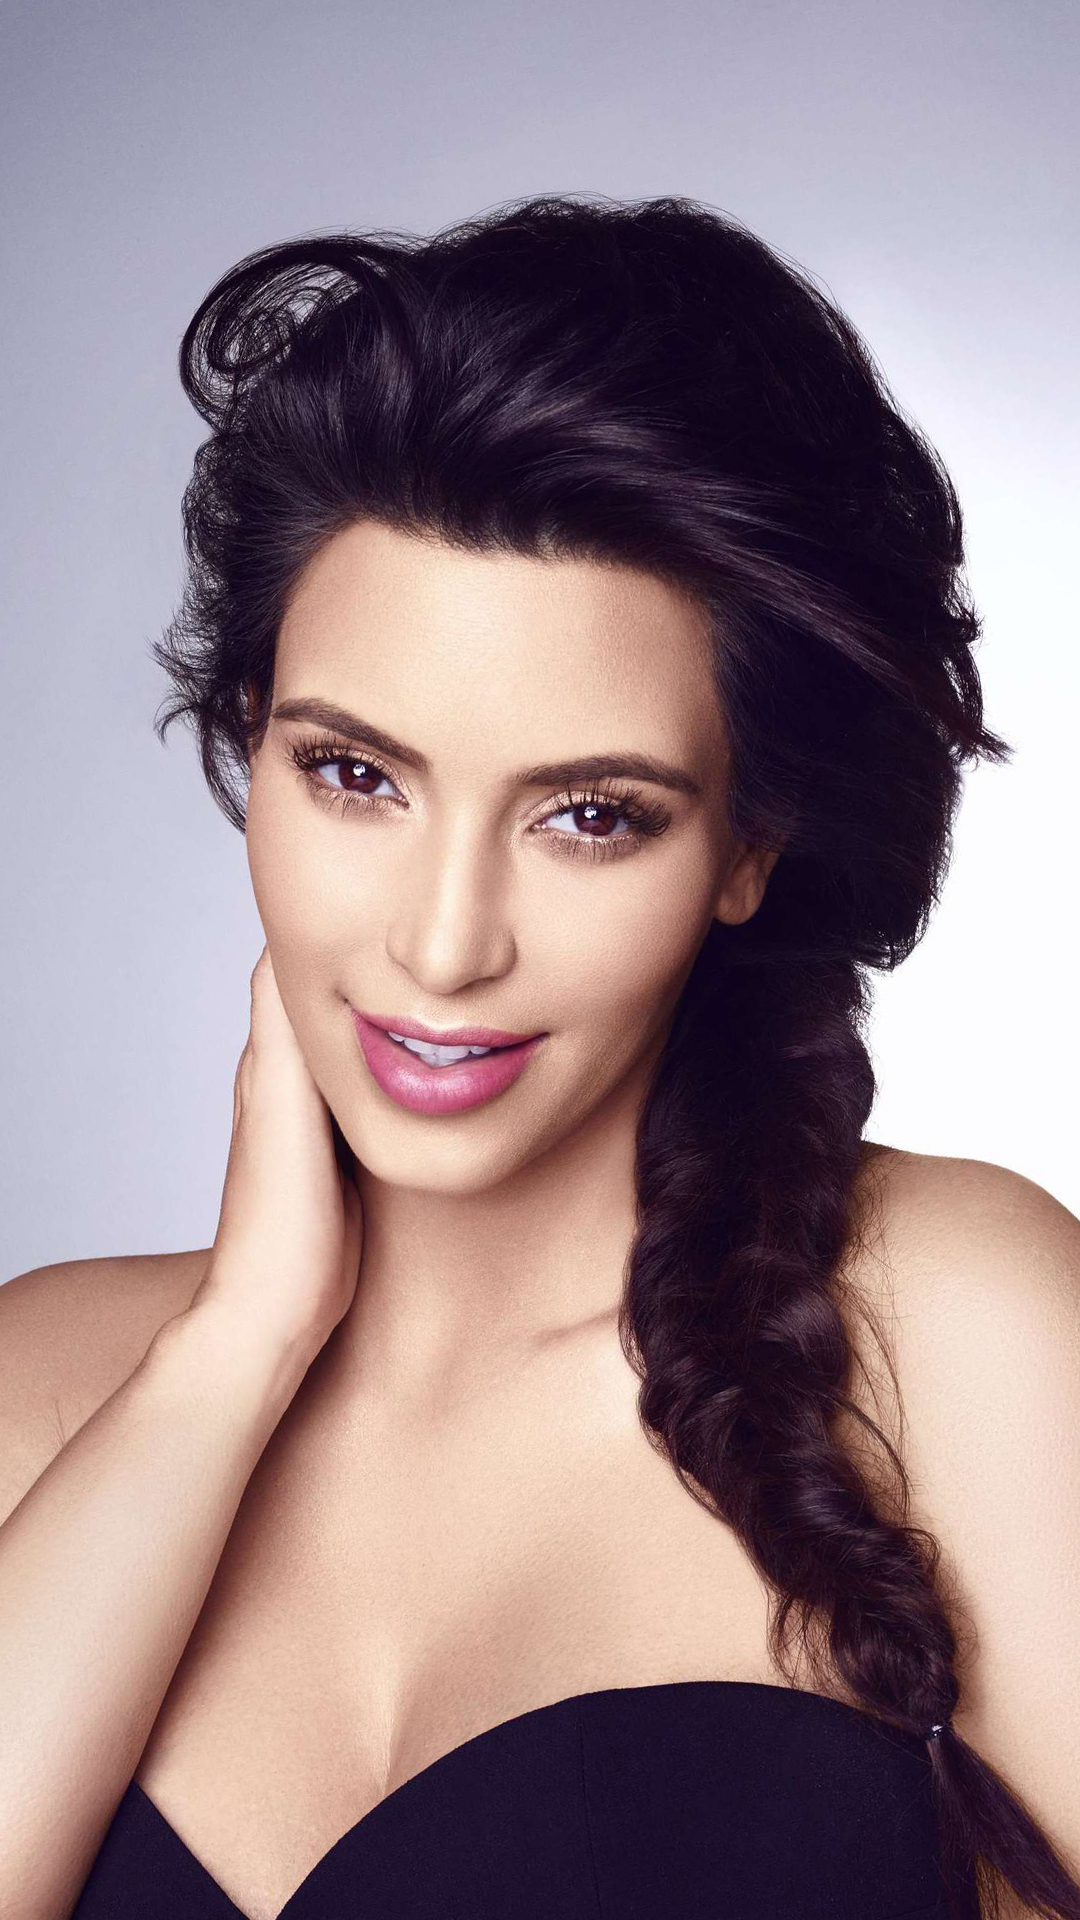 Kim Kardashian Beauty htc one wallpaper